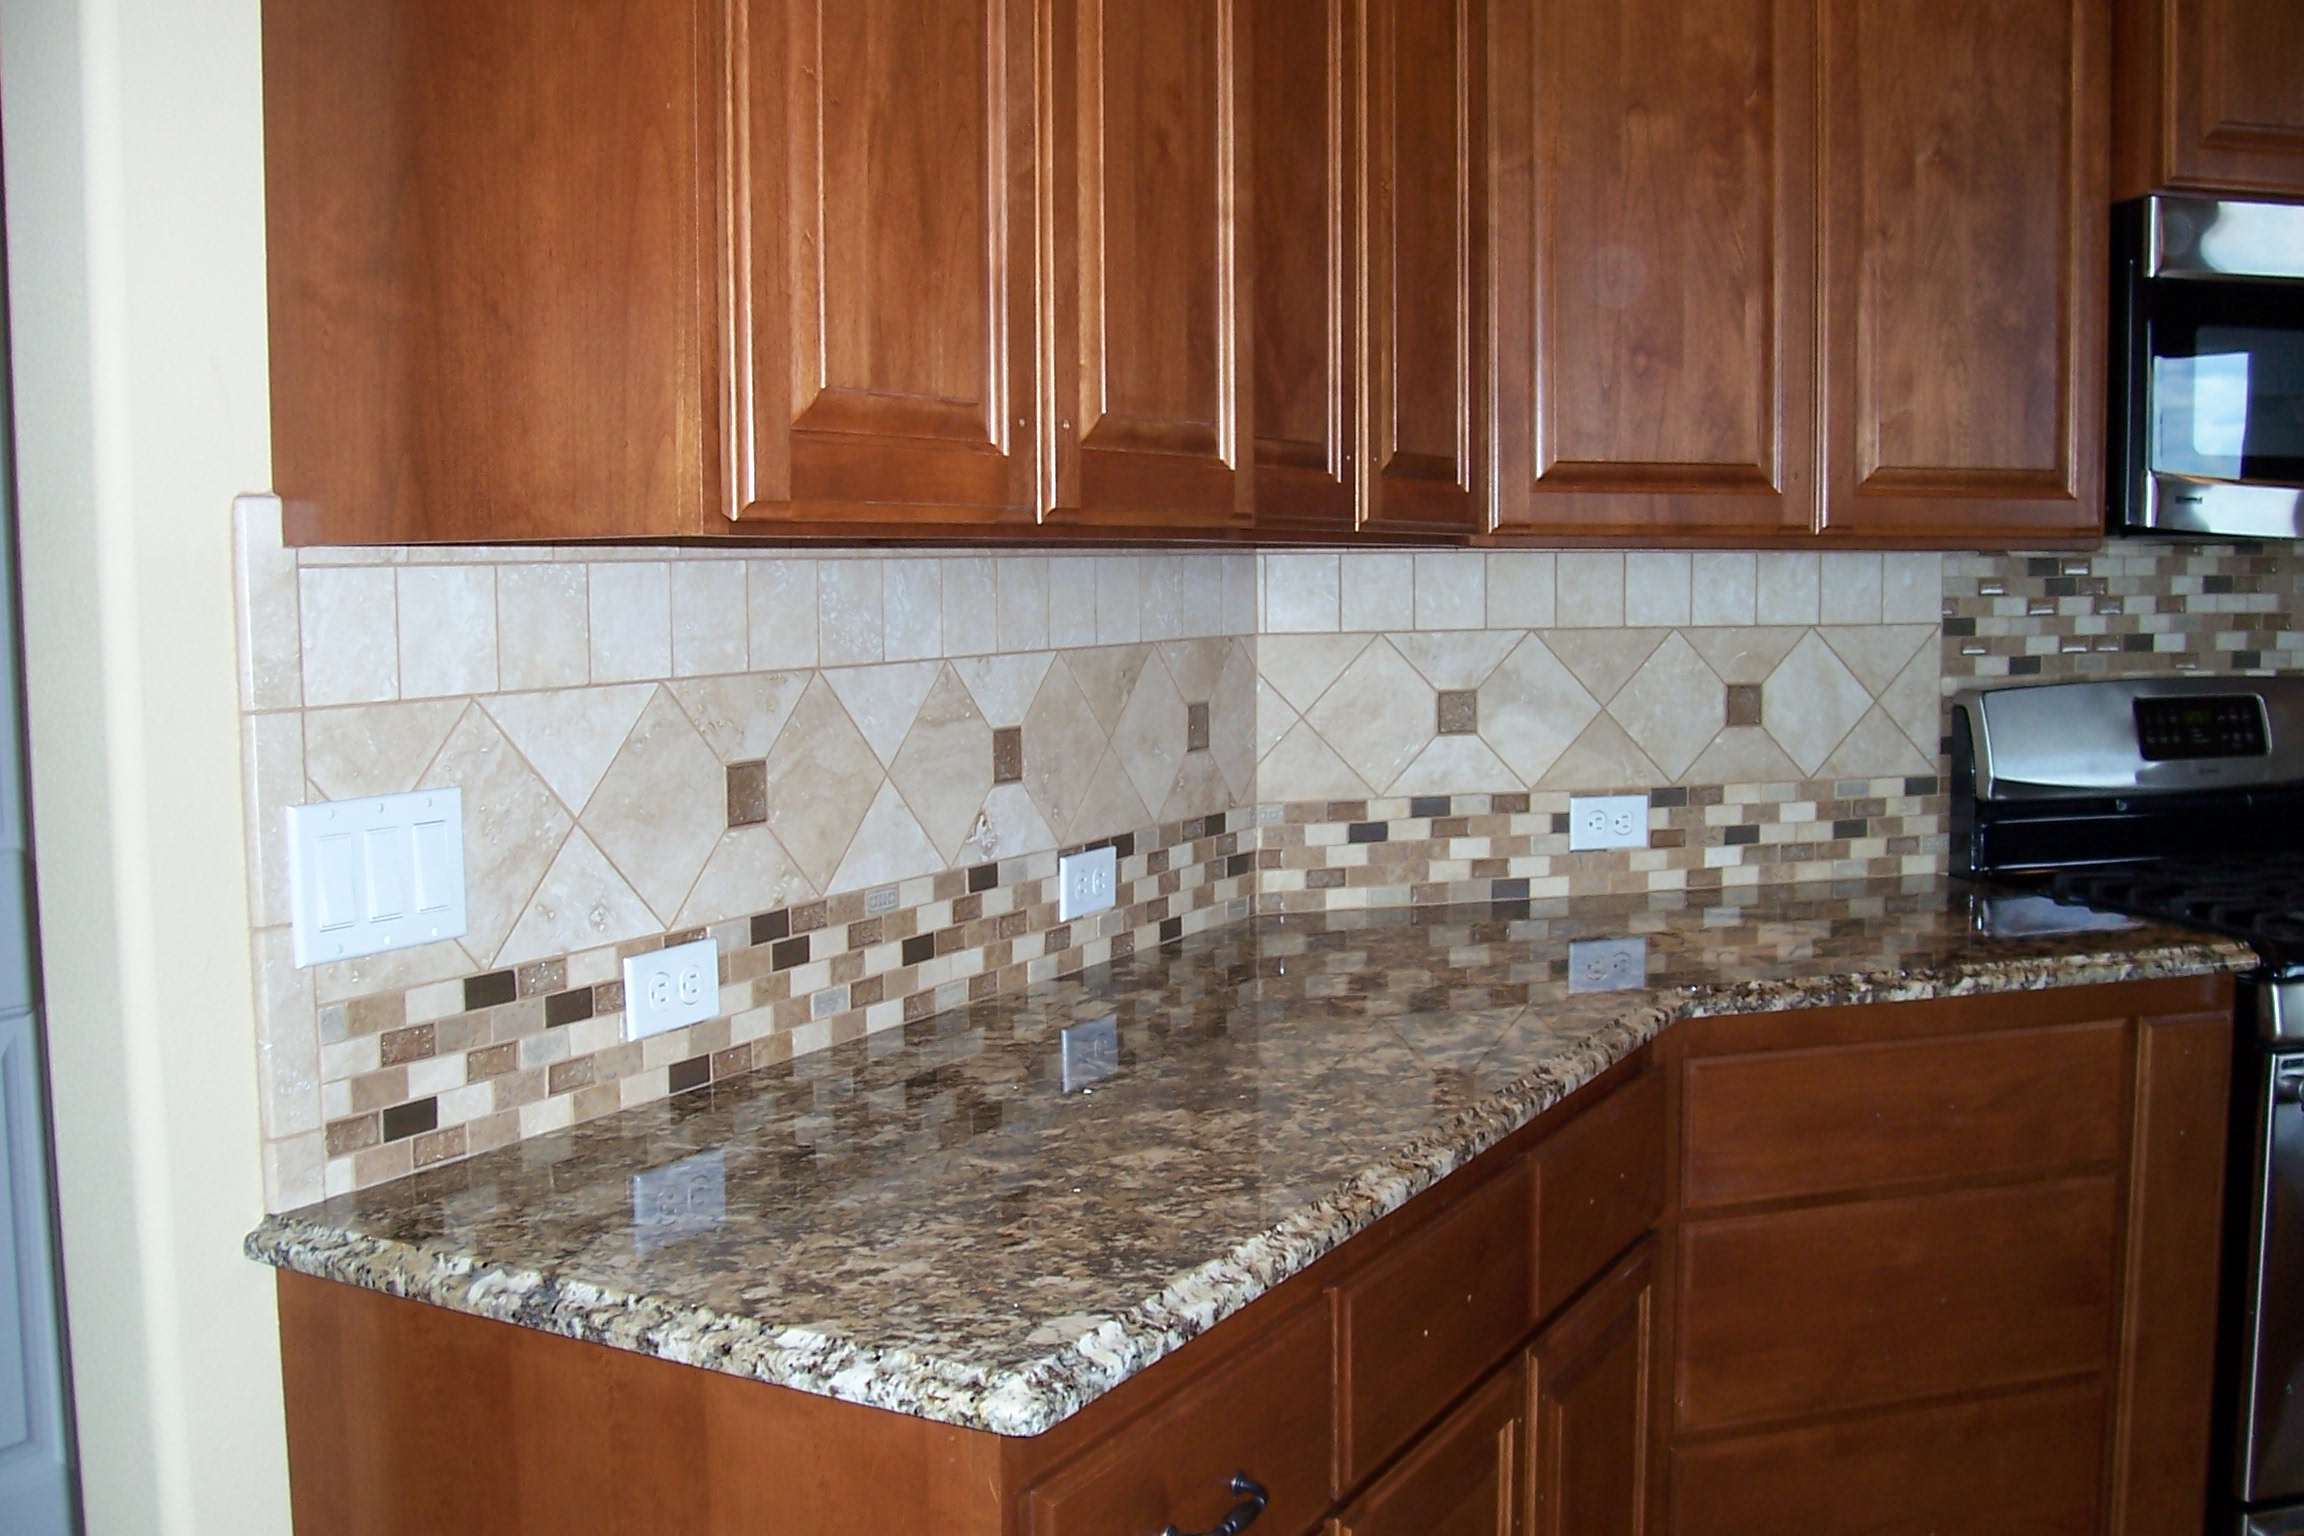 301 moved permanently Kitchen tile backsplash